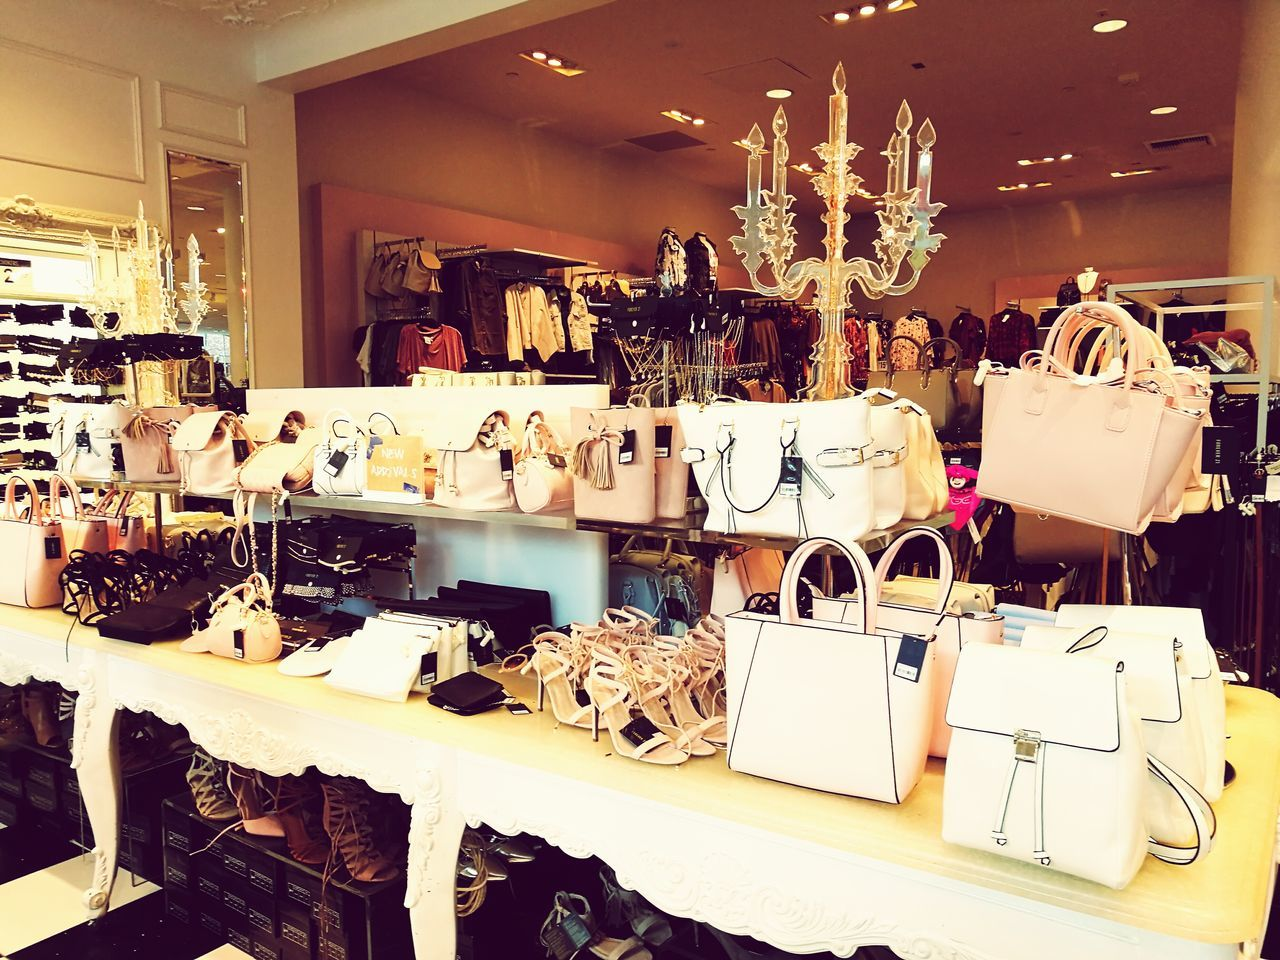 Shopping ♡ Handbags, Accessoires Shoes ♥ Love Shoppinggg Indoors  No People